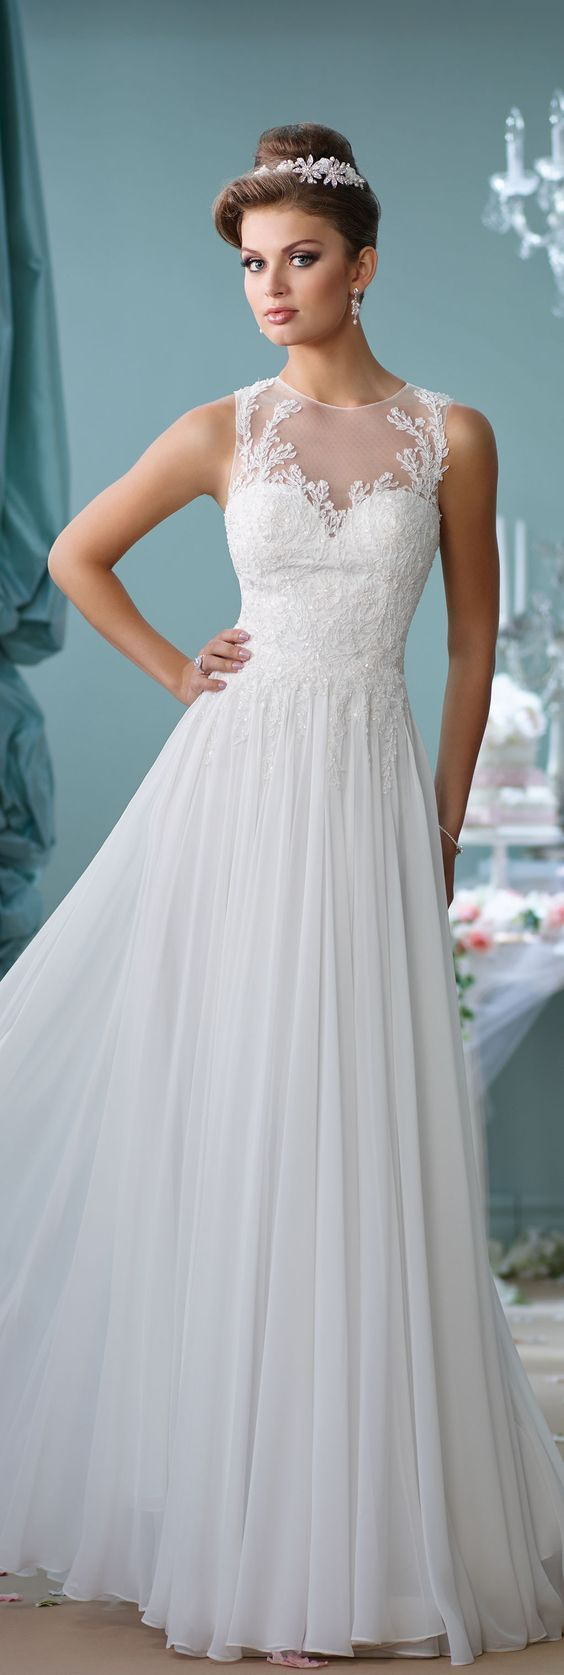 Mon Cheri Spring 2016 Lace Wedding Dress/ http://www.deerpearlflowers.com/lace-wedding-dresses-and-gowns/3/